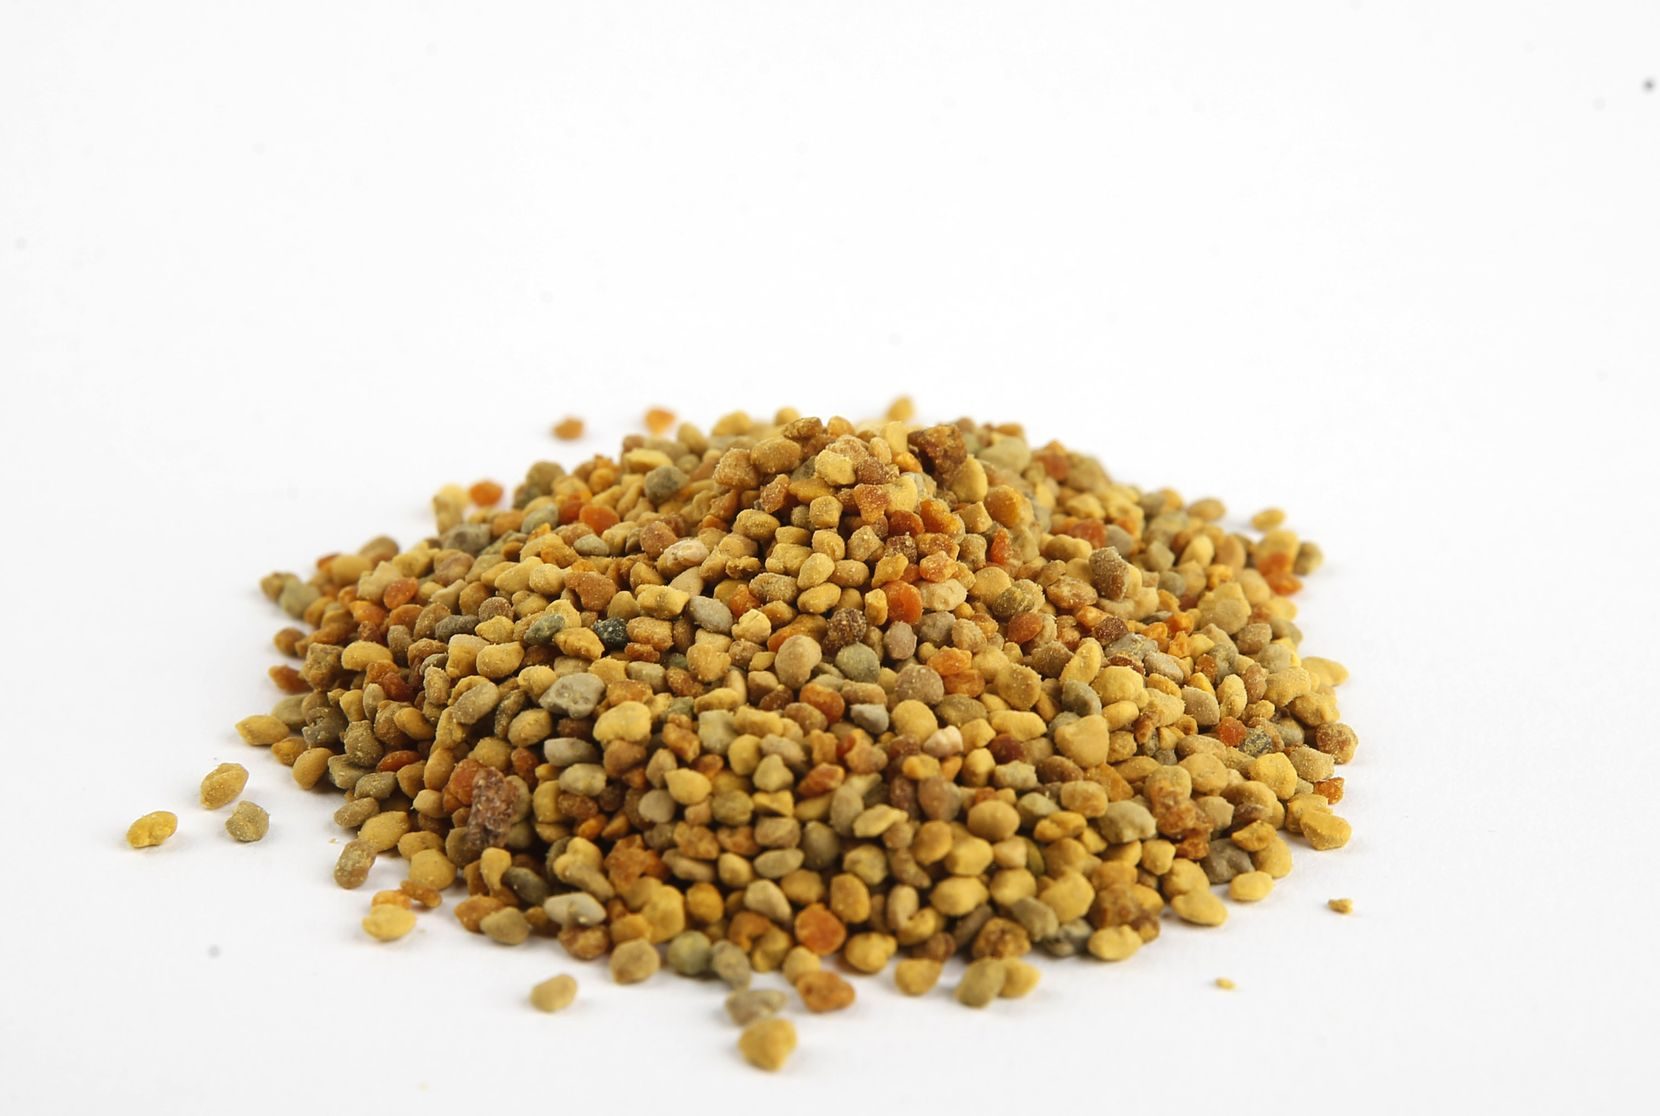 Granulated bee pollen